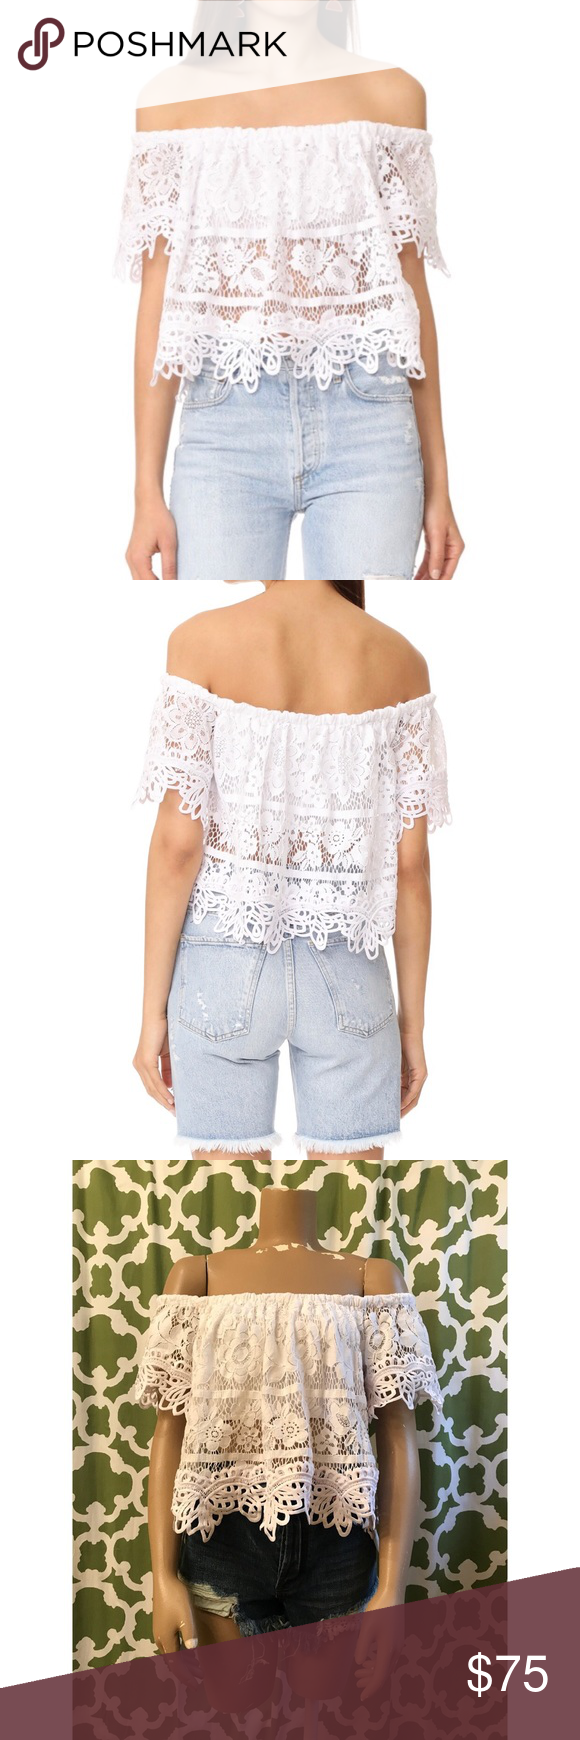 3f880728b77c4 NWT Free People Sweet Dreams Lace Crop Top